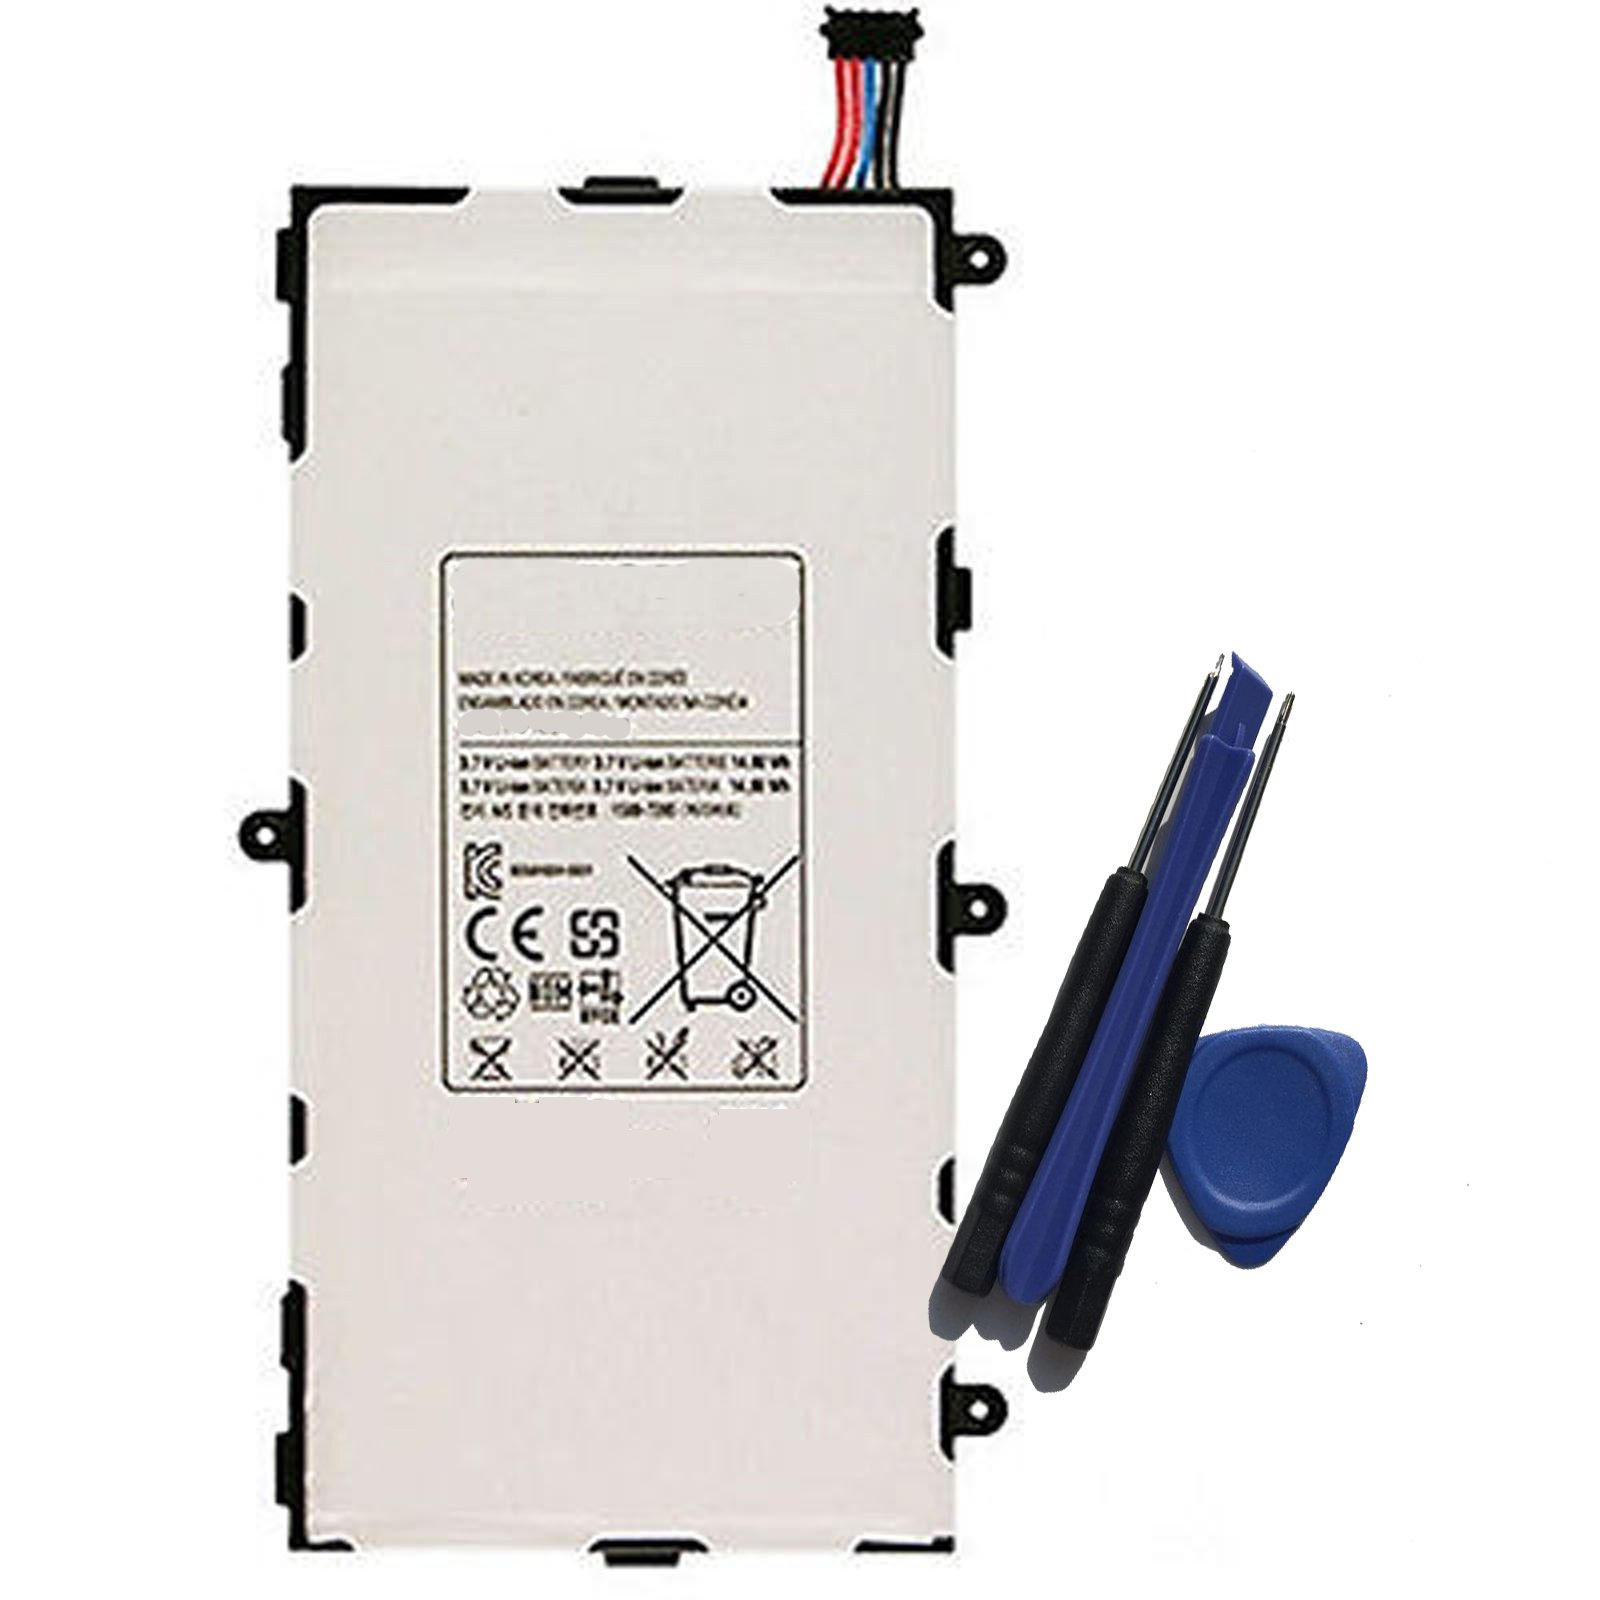 Aowe Replacement for Samsung LT02 Battery T4000E Galaxy Tab 3 SM-T217A SM-T217S T217 T217S Tablet 4000mAh with Installation Tools